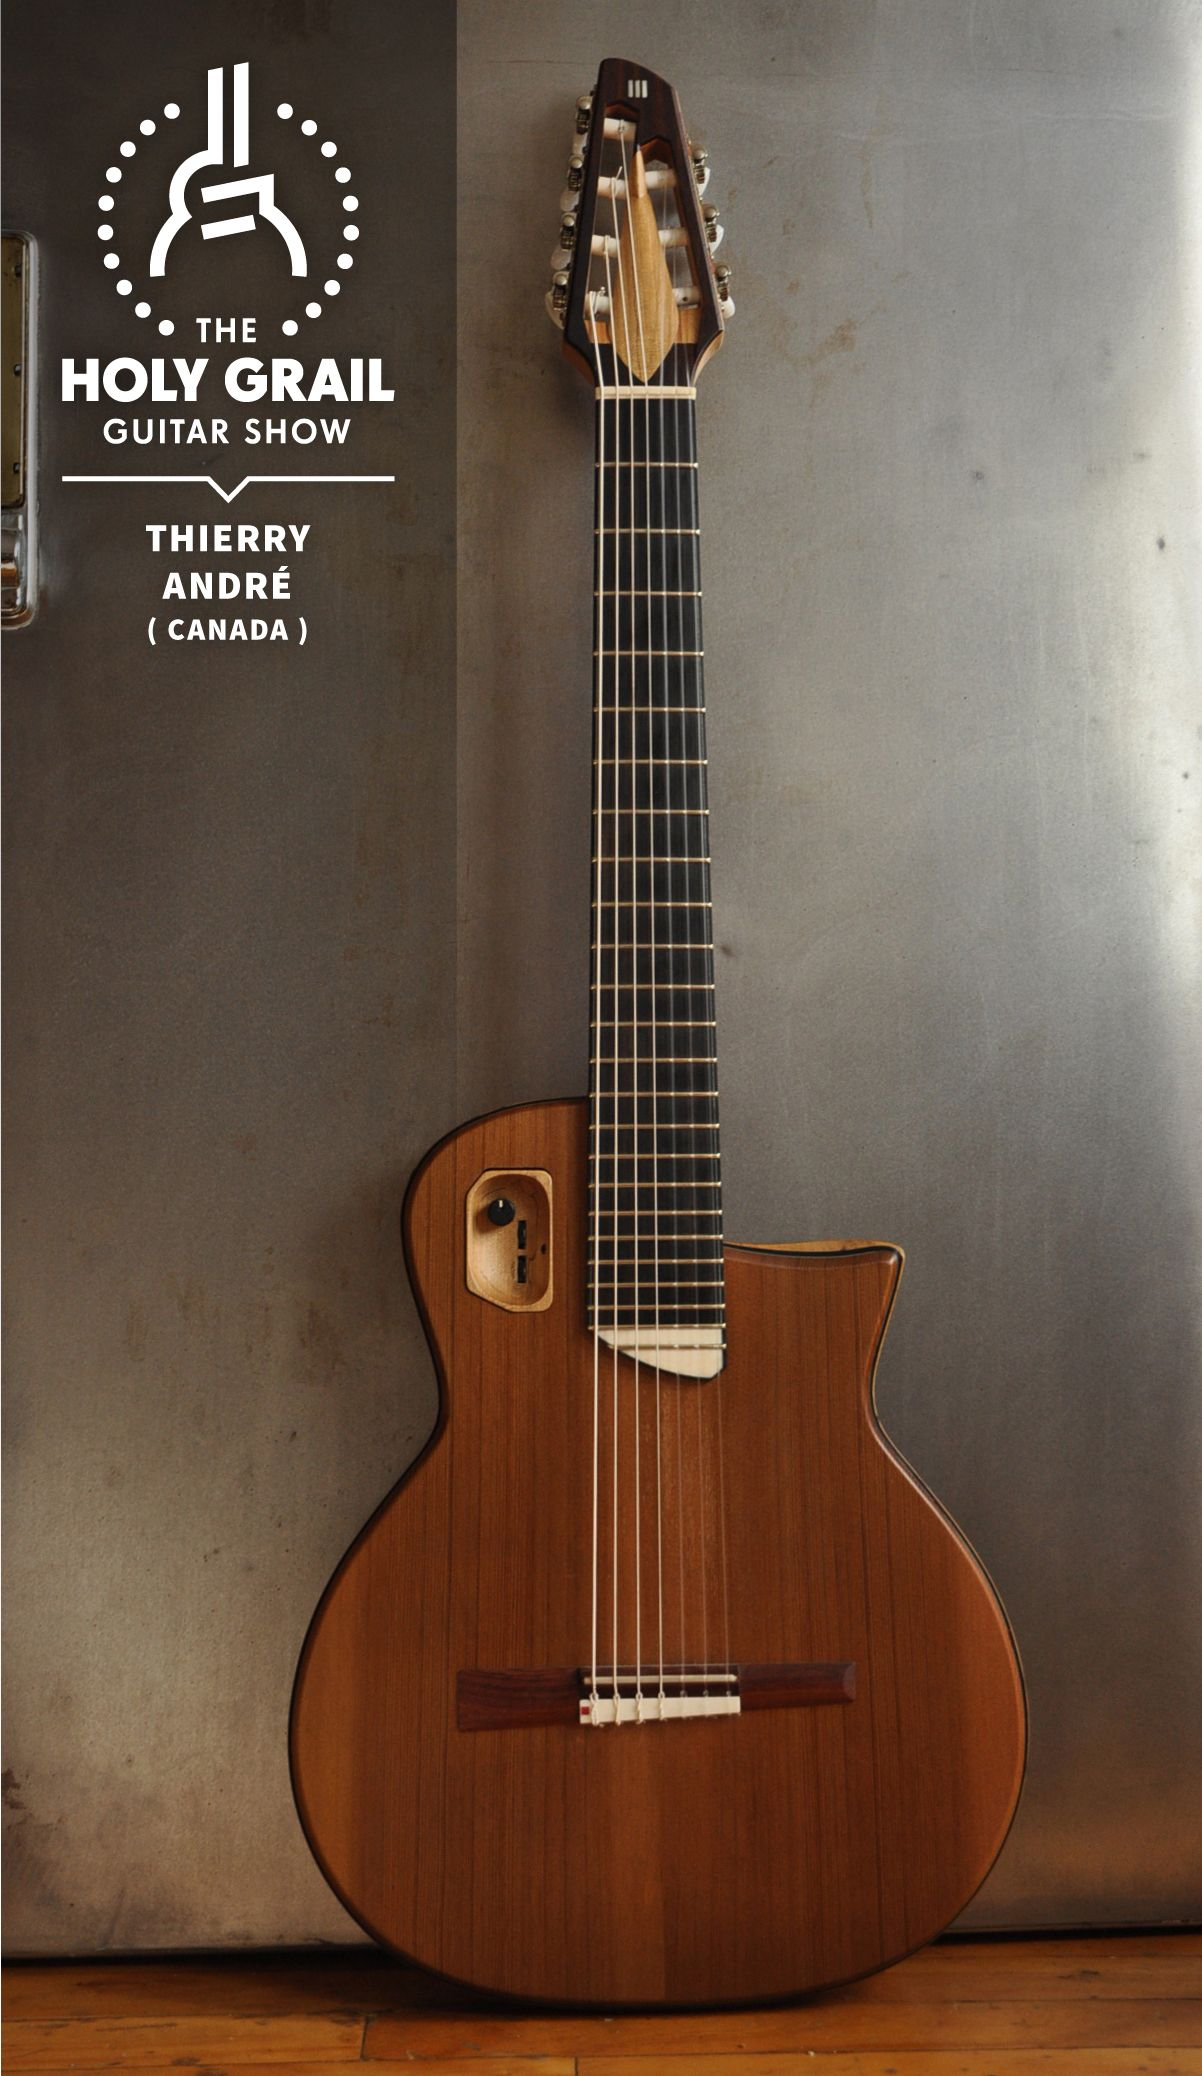 Exhibitor At The Holy Grail Guitar Show 2014 Thierry Andre Canada Http Www Thierryandre Com Https Www Facebook Com Guitar Acoustic Guitar Guitar Design